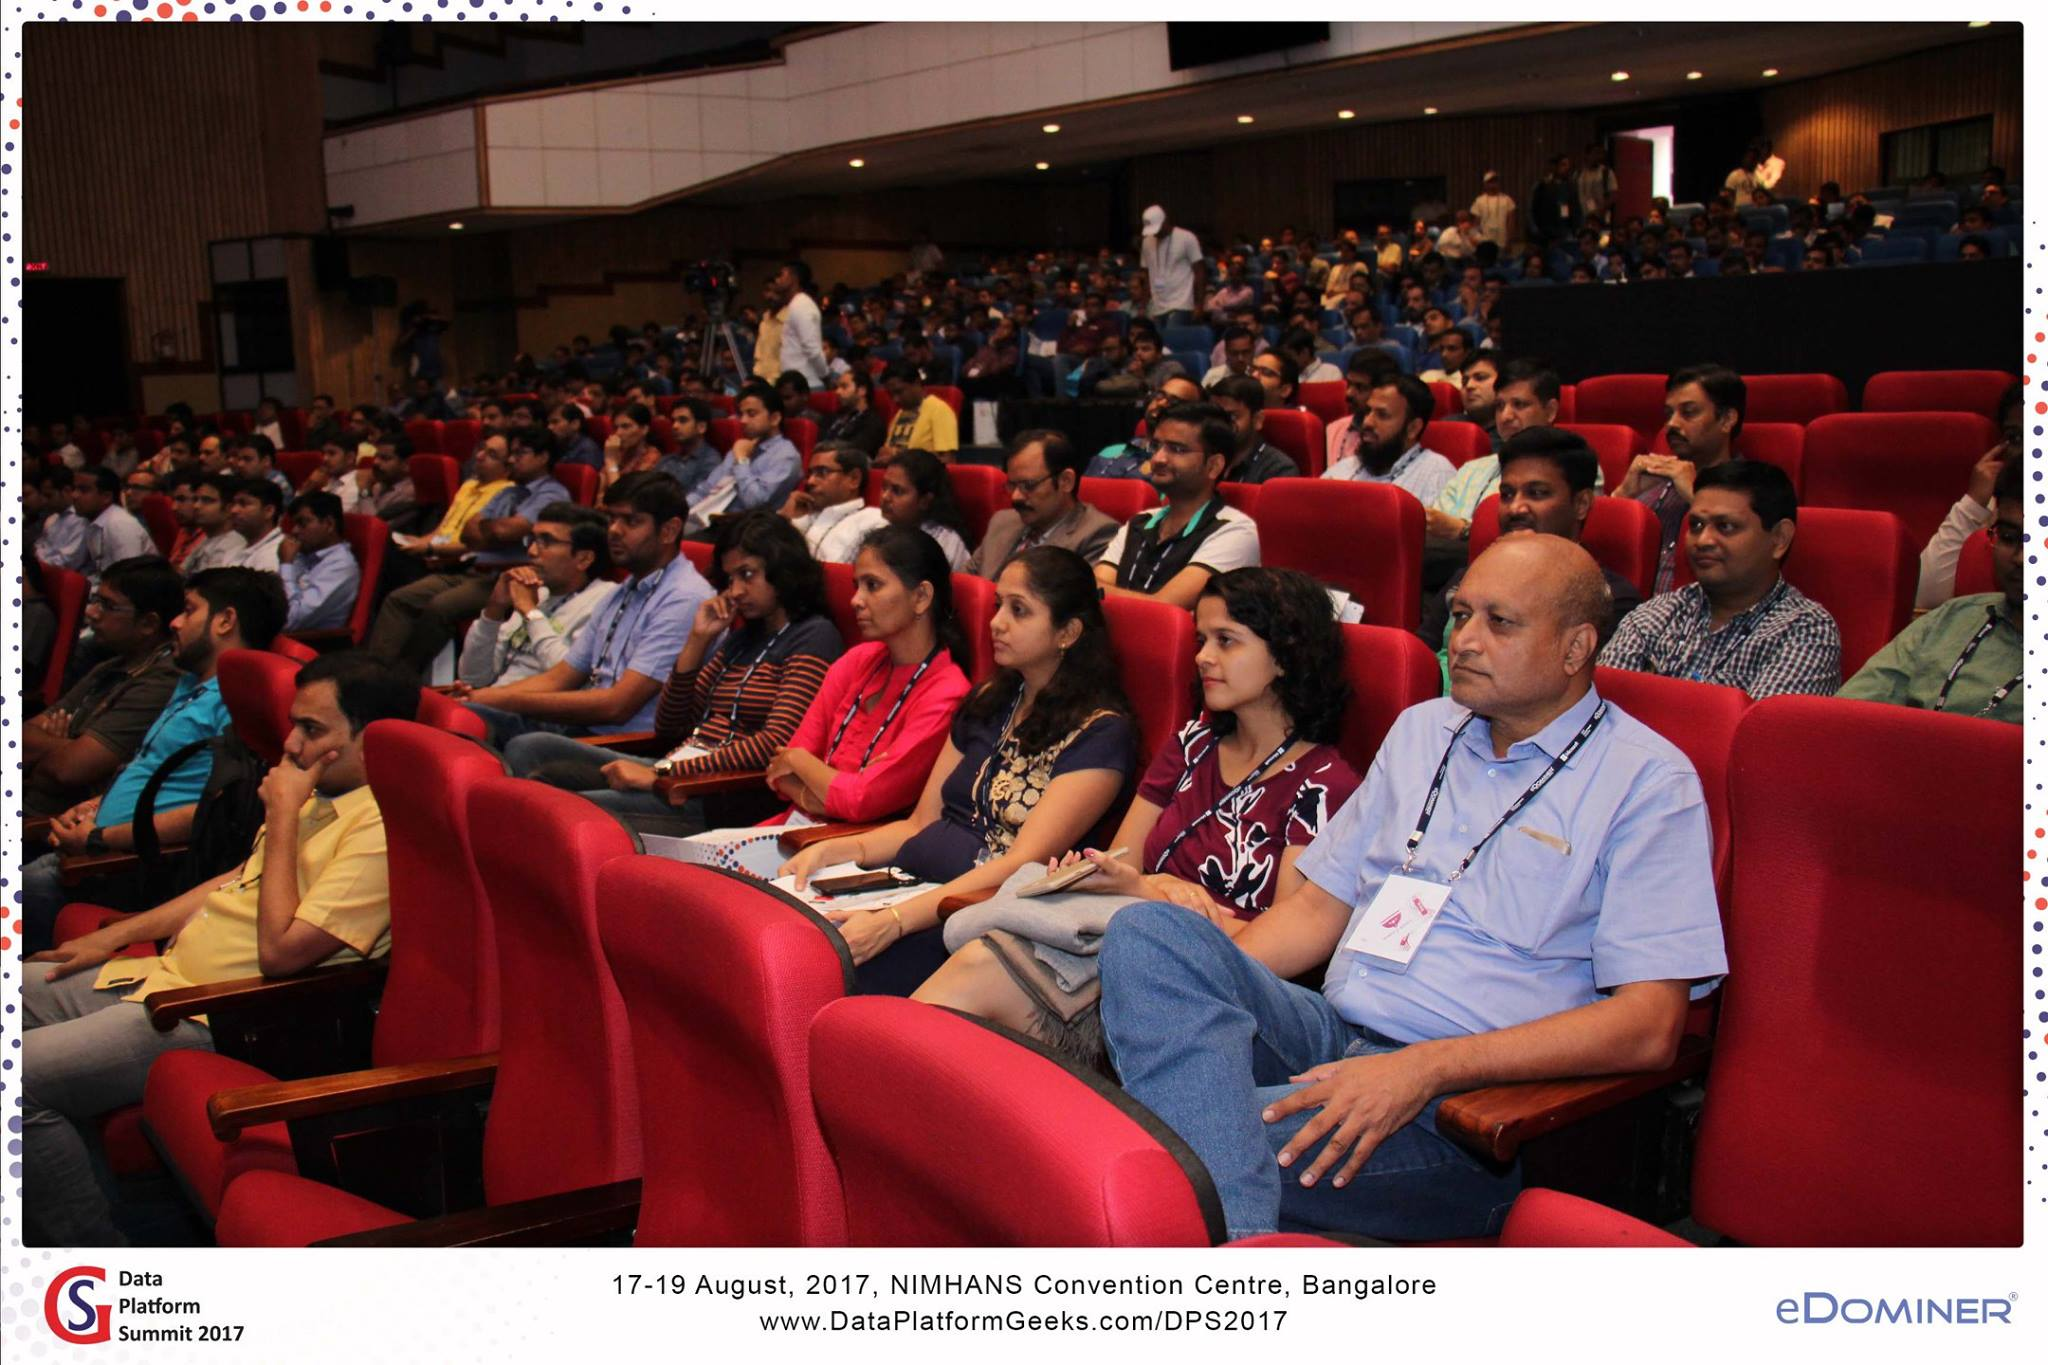 DPS2017_Attendees